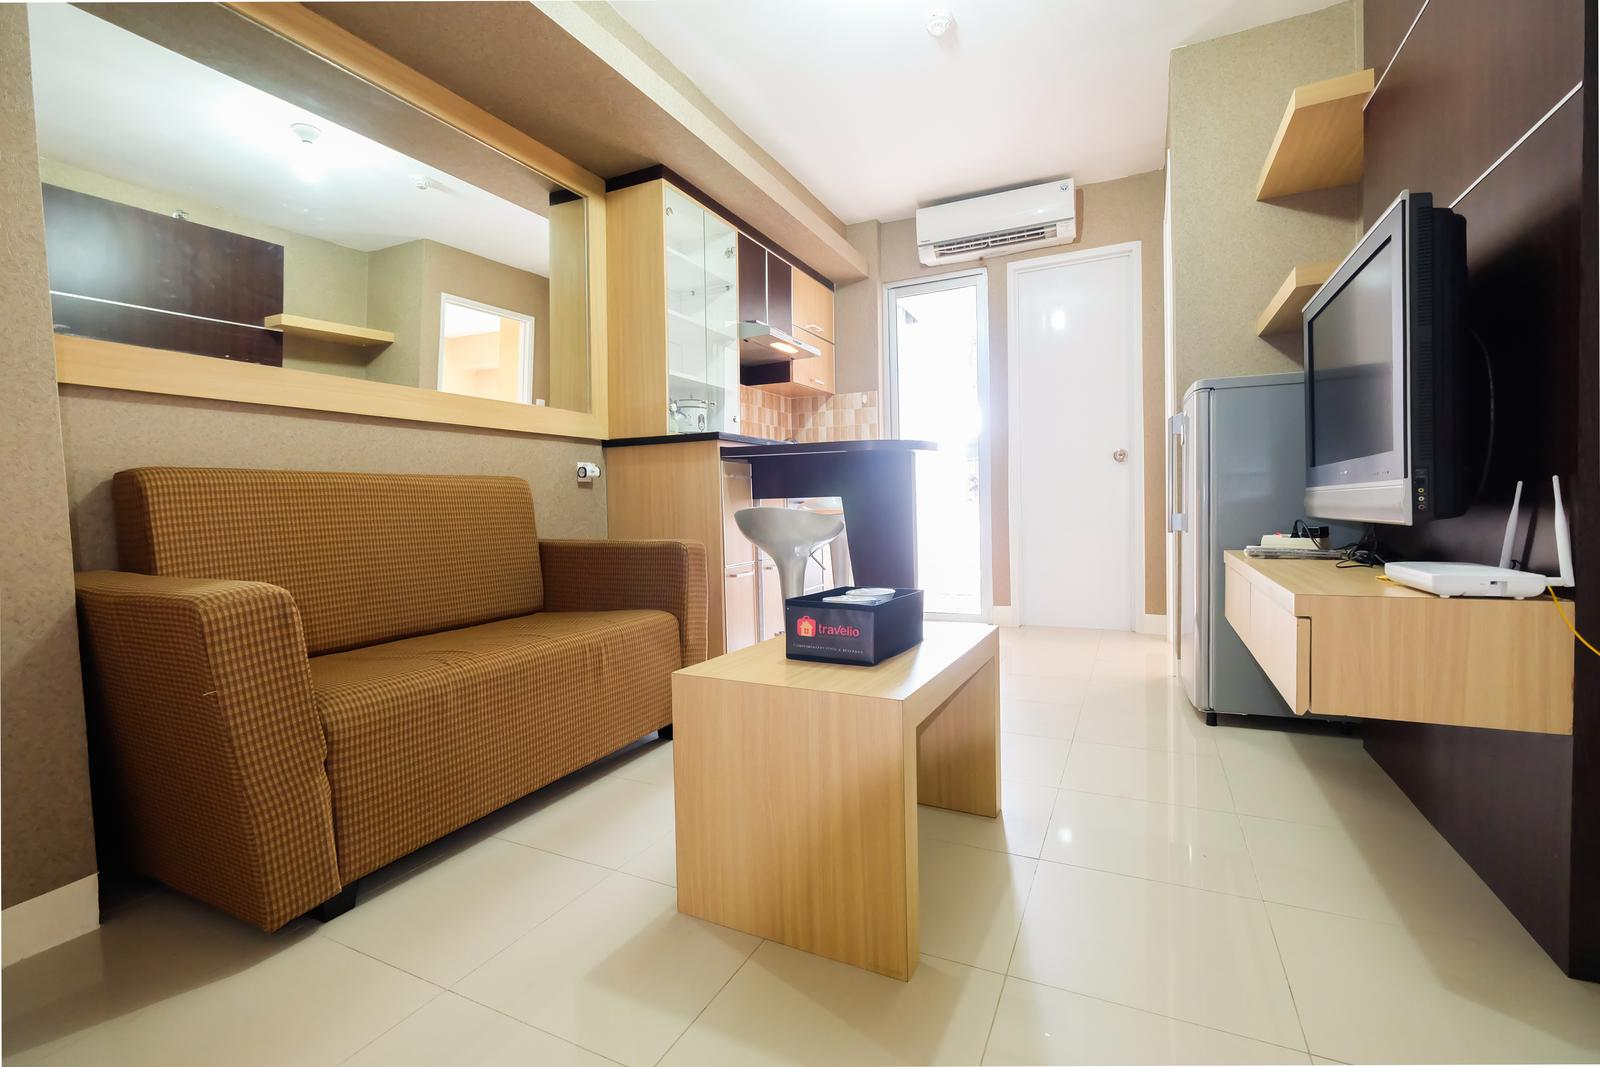 Bassura City Cipinang - Homely 2 BR Bassura City Apartment By Travelio